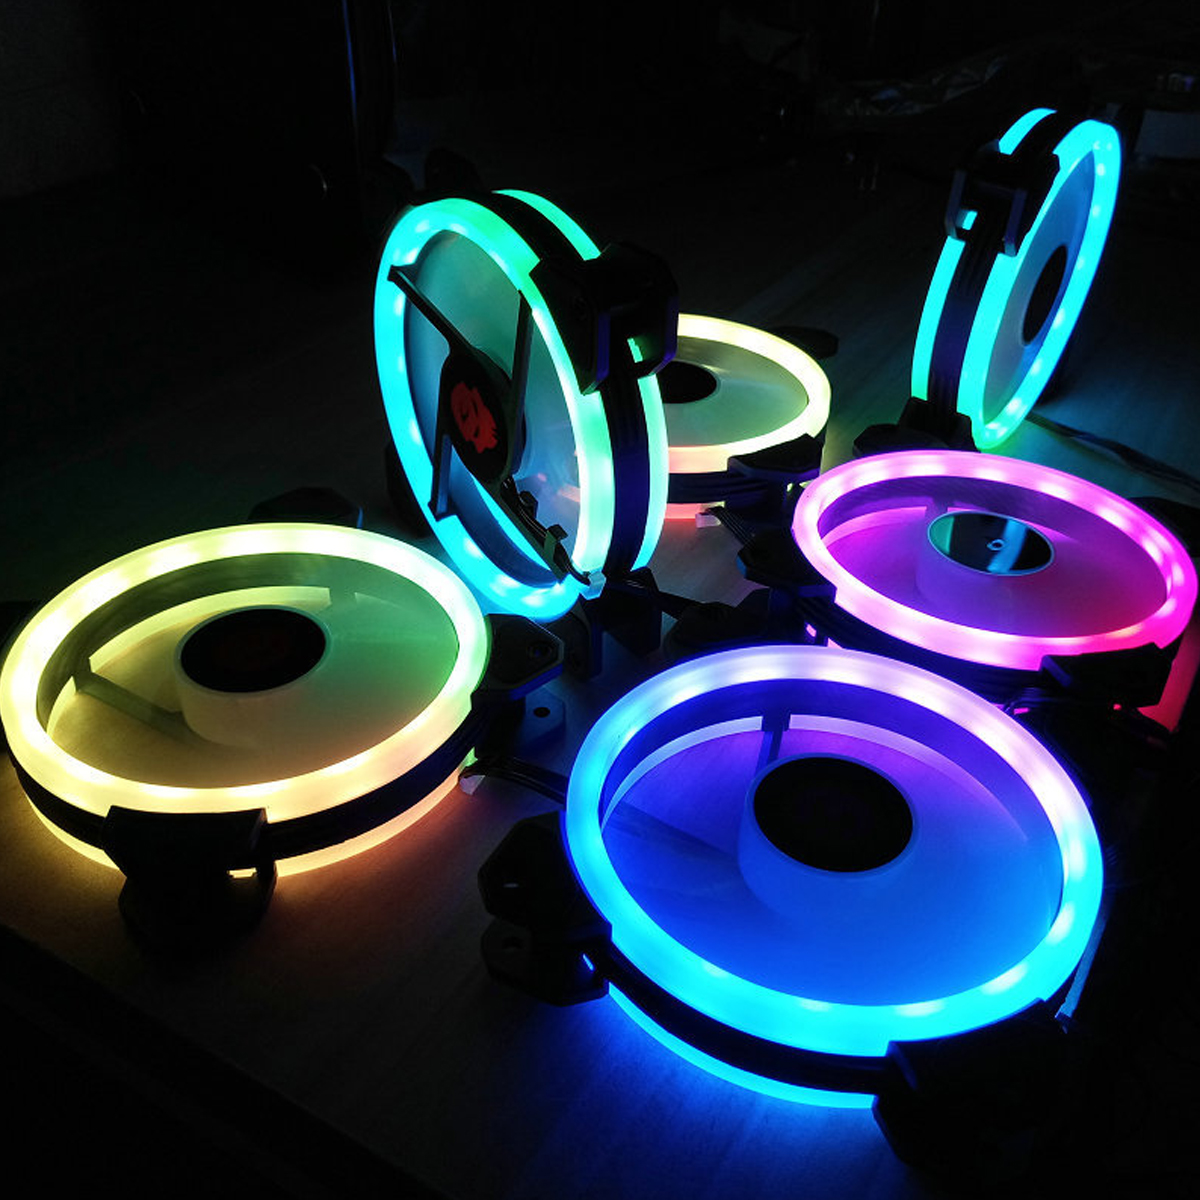 Lighting Rgb Coolmoon 6pcs 120mm Adjustable Rgb Led Light Computer Pc Case Cooling Fan With Ir Remote